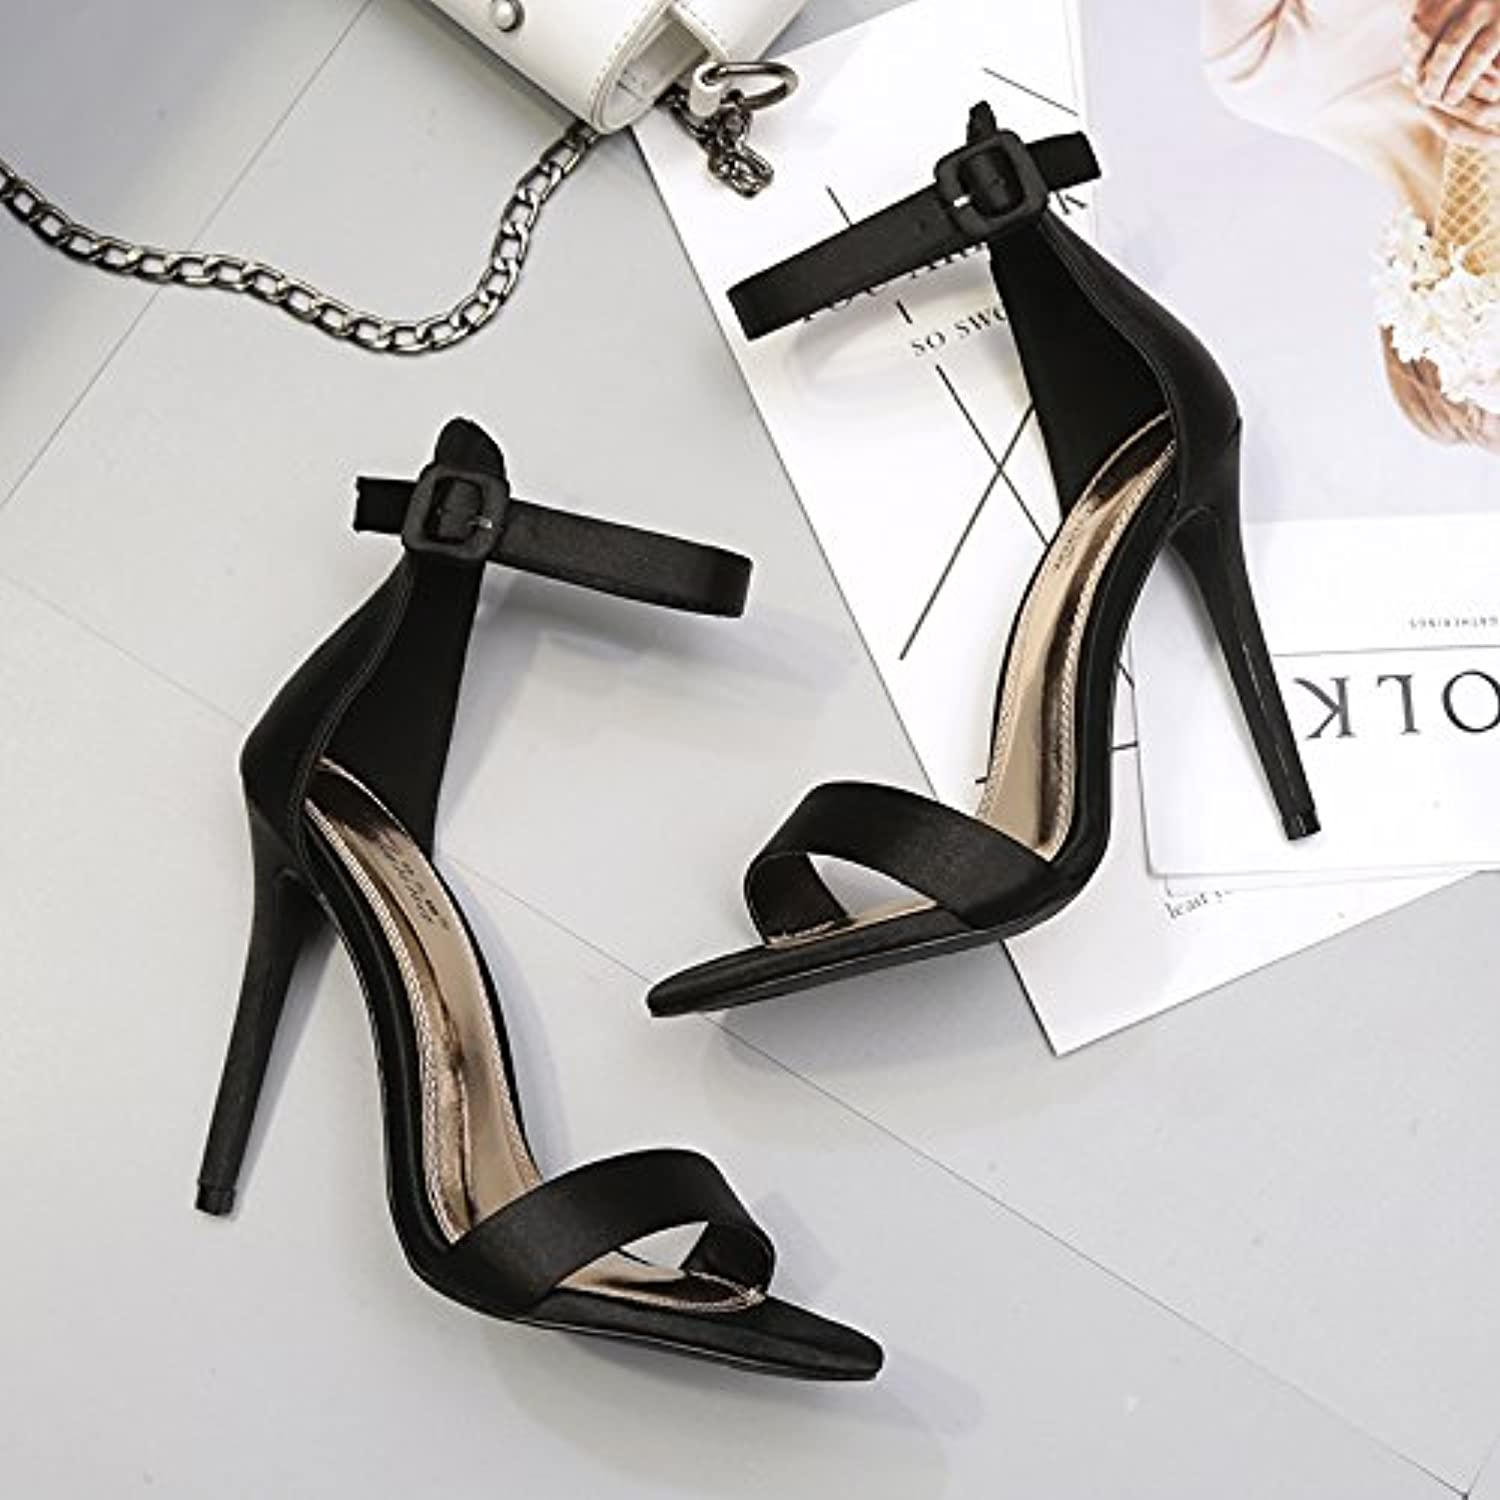 SHOESHAOGE High Heel Sandals Night Wear Buckle Princess Satin Shoes Fine Heel 10Cm Sandalen Für Damen